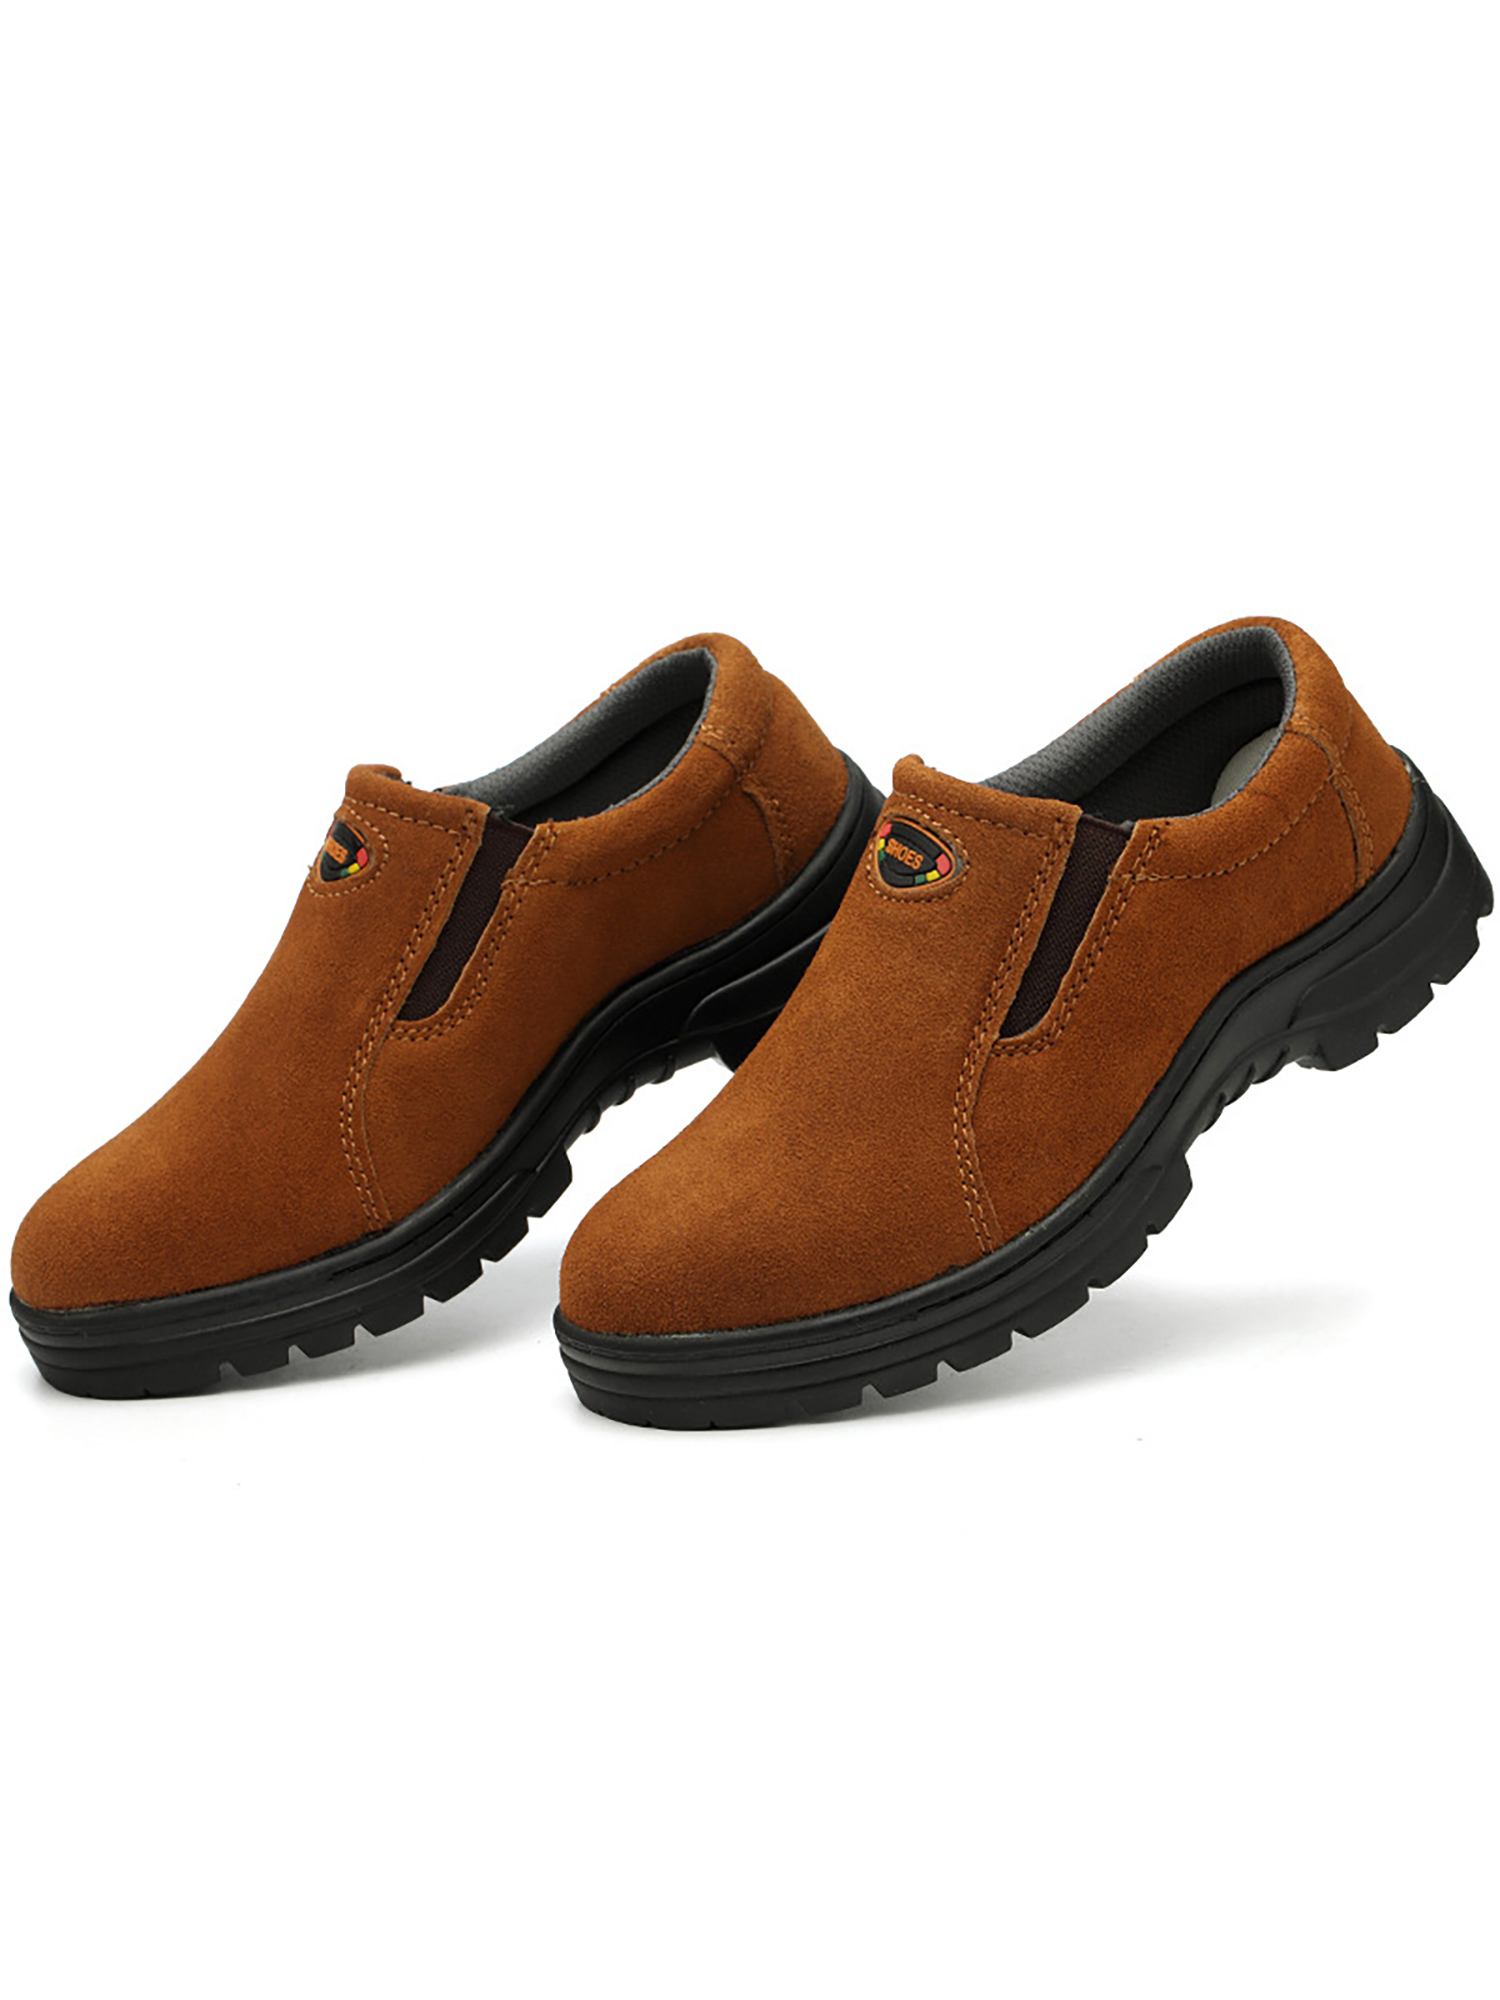 Daeful Mens Leather Ankle Safety Boots Lace Up Steel Toe Cap Work Boots Hiker Shoes